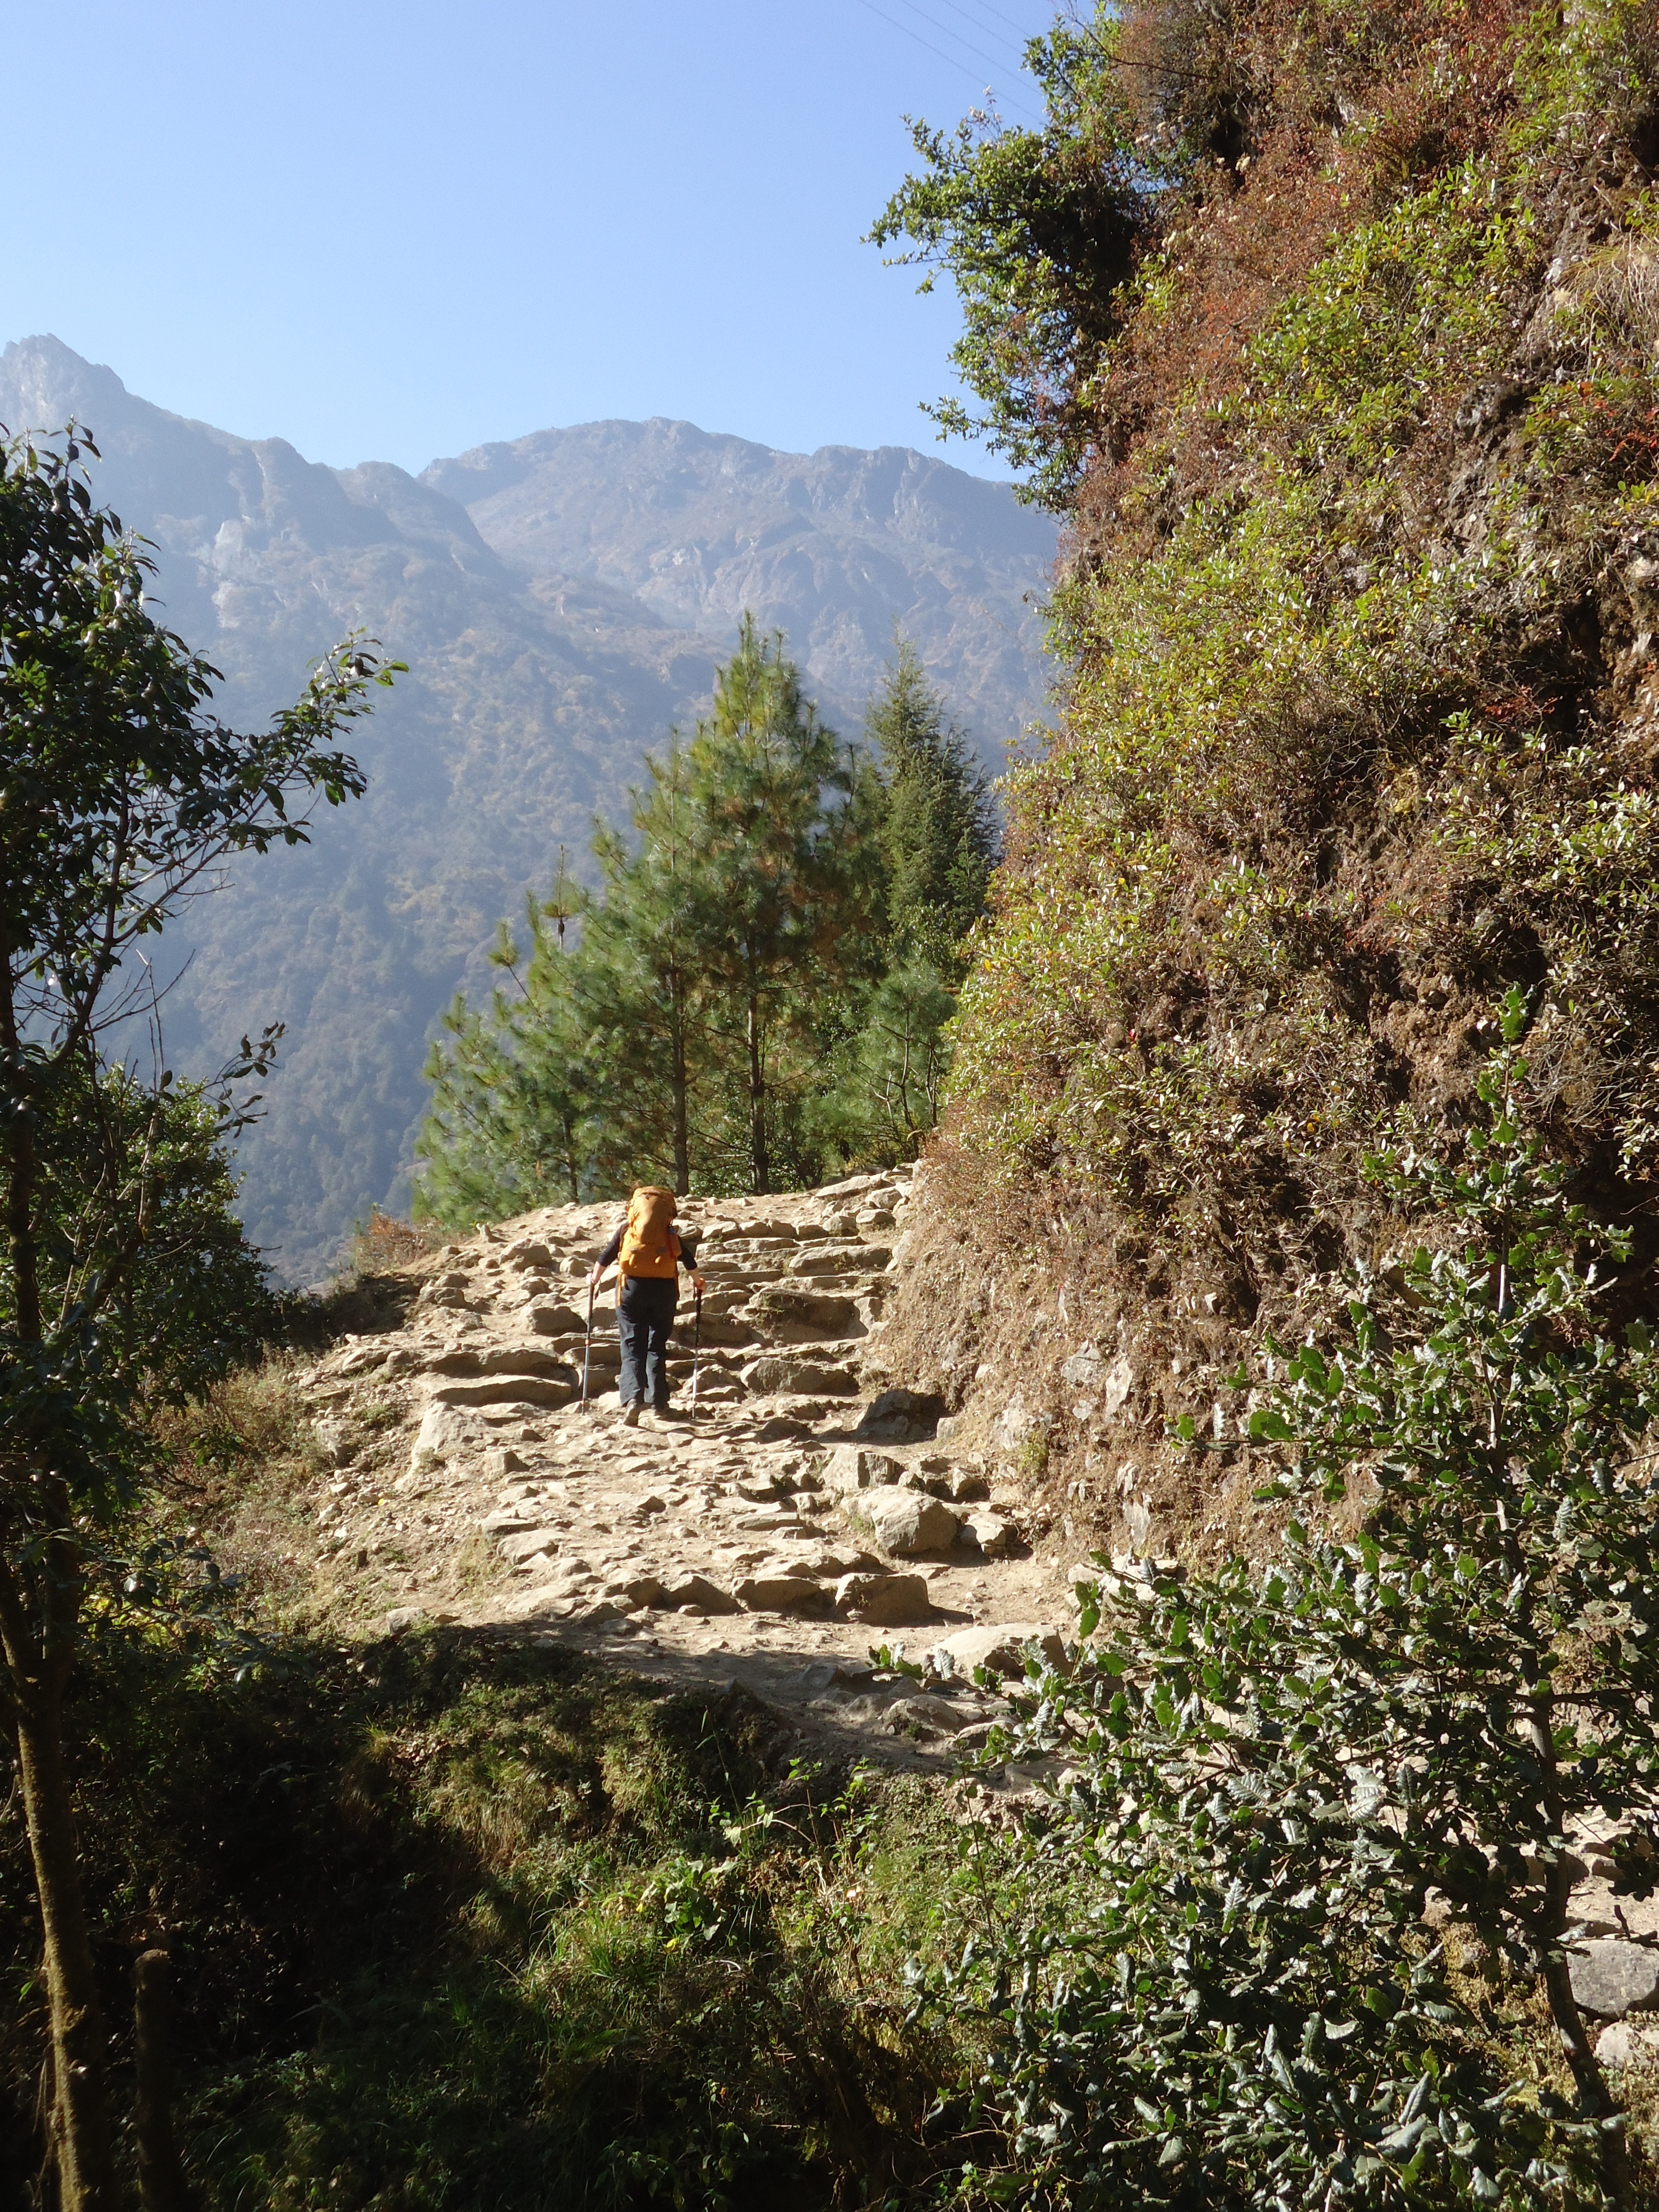 Between Lukla and Phakding